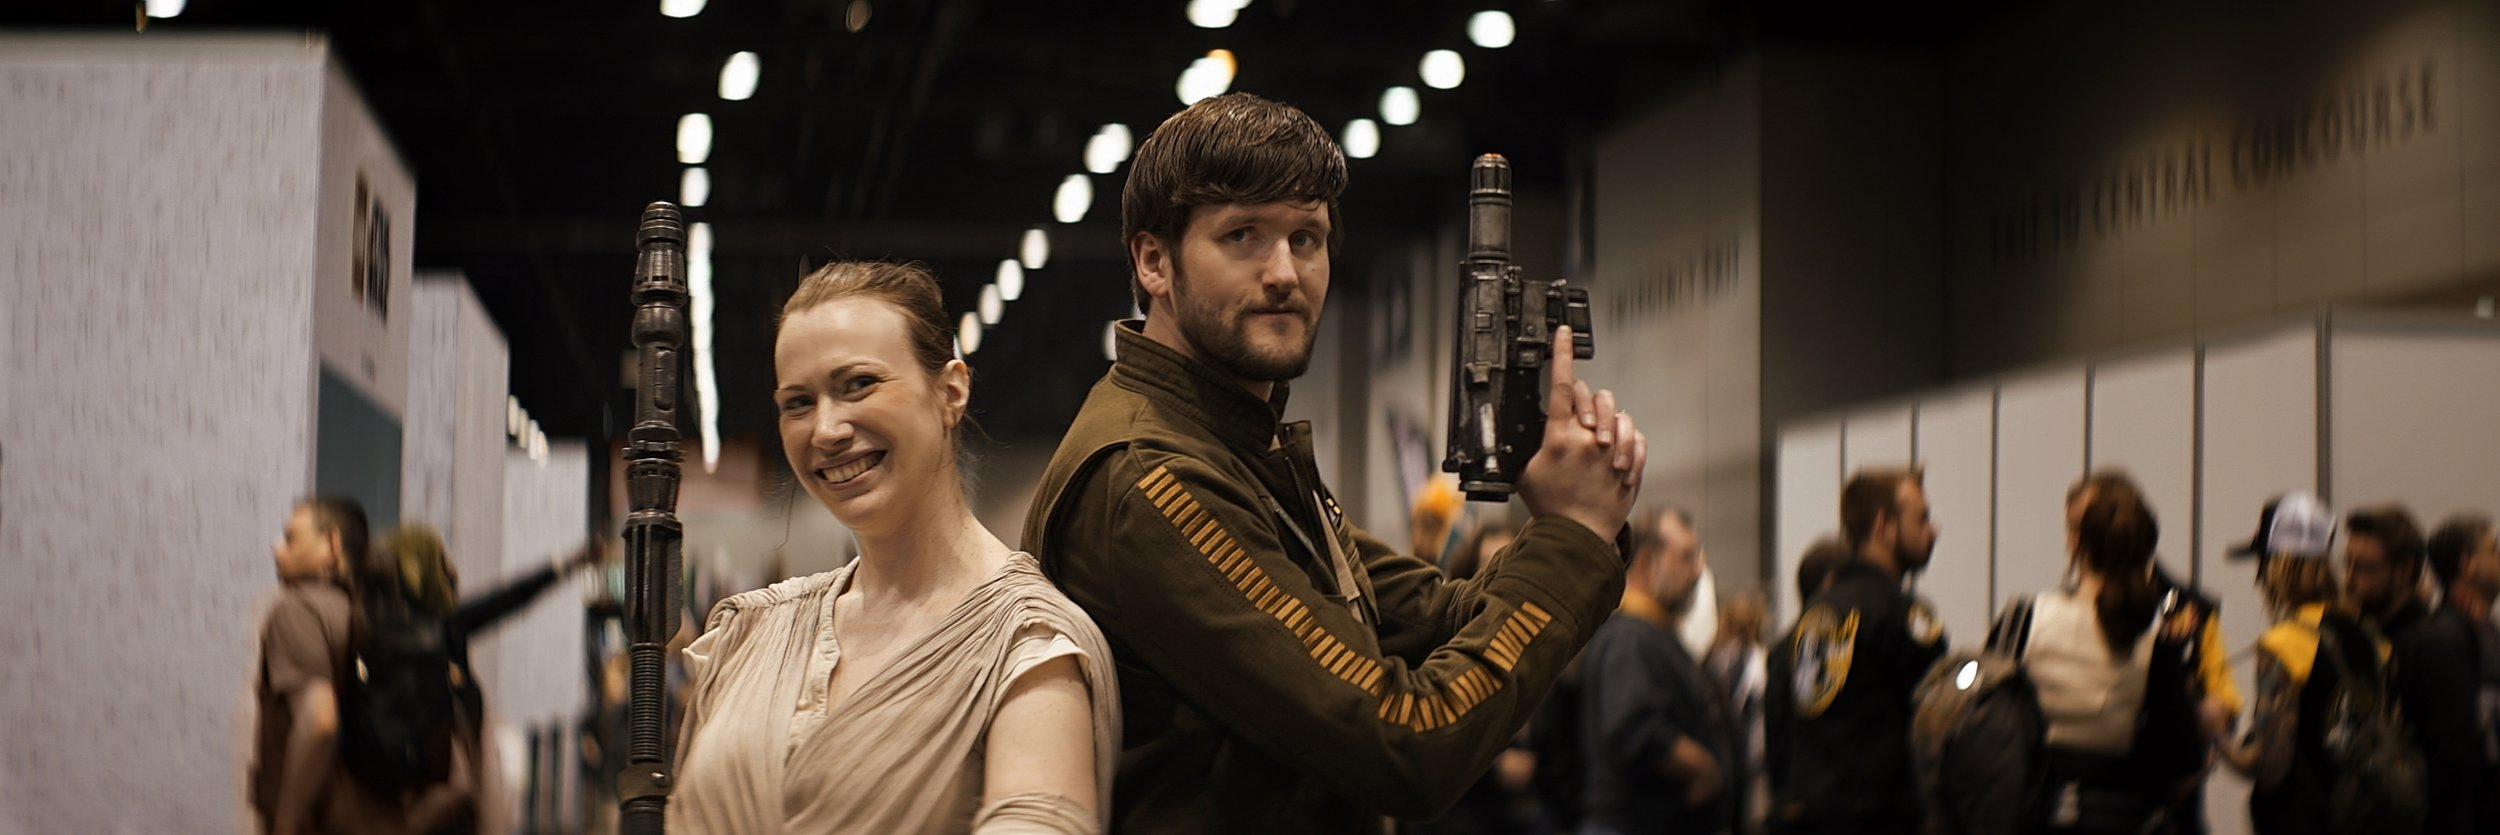 Lomo 75mm Anamorphic Lens | Star Wars Celebration Chicago - SWCC | Jenna Hunt (@jeniwan_kenobi), and Laurence Blackledge (@latchwooking) of the Great Lakes Rebel Legion show off their costumes on the expo floor in McCorrmick Place, Chicago IL. You can find them on the web    here    - Photo by: Keith Nickoson